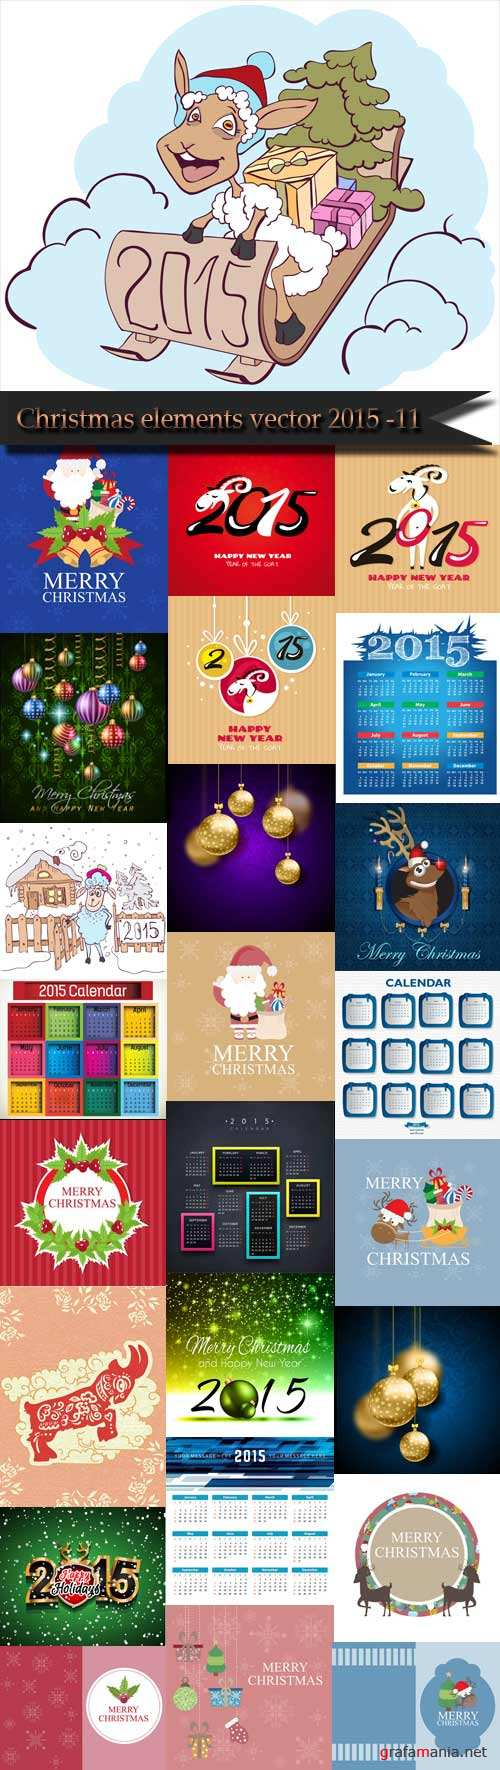 Christmas elements vector 2015 -11